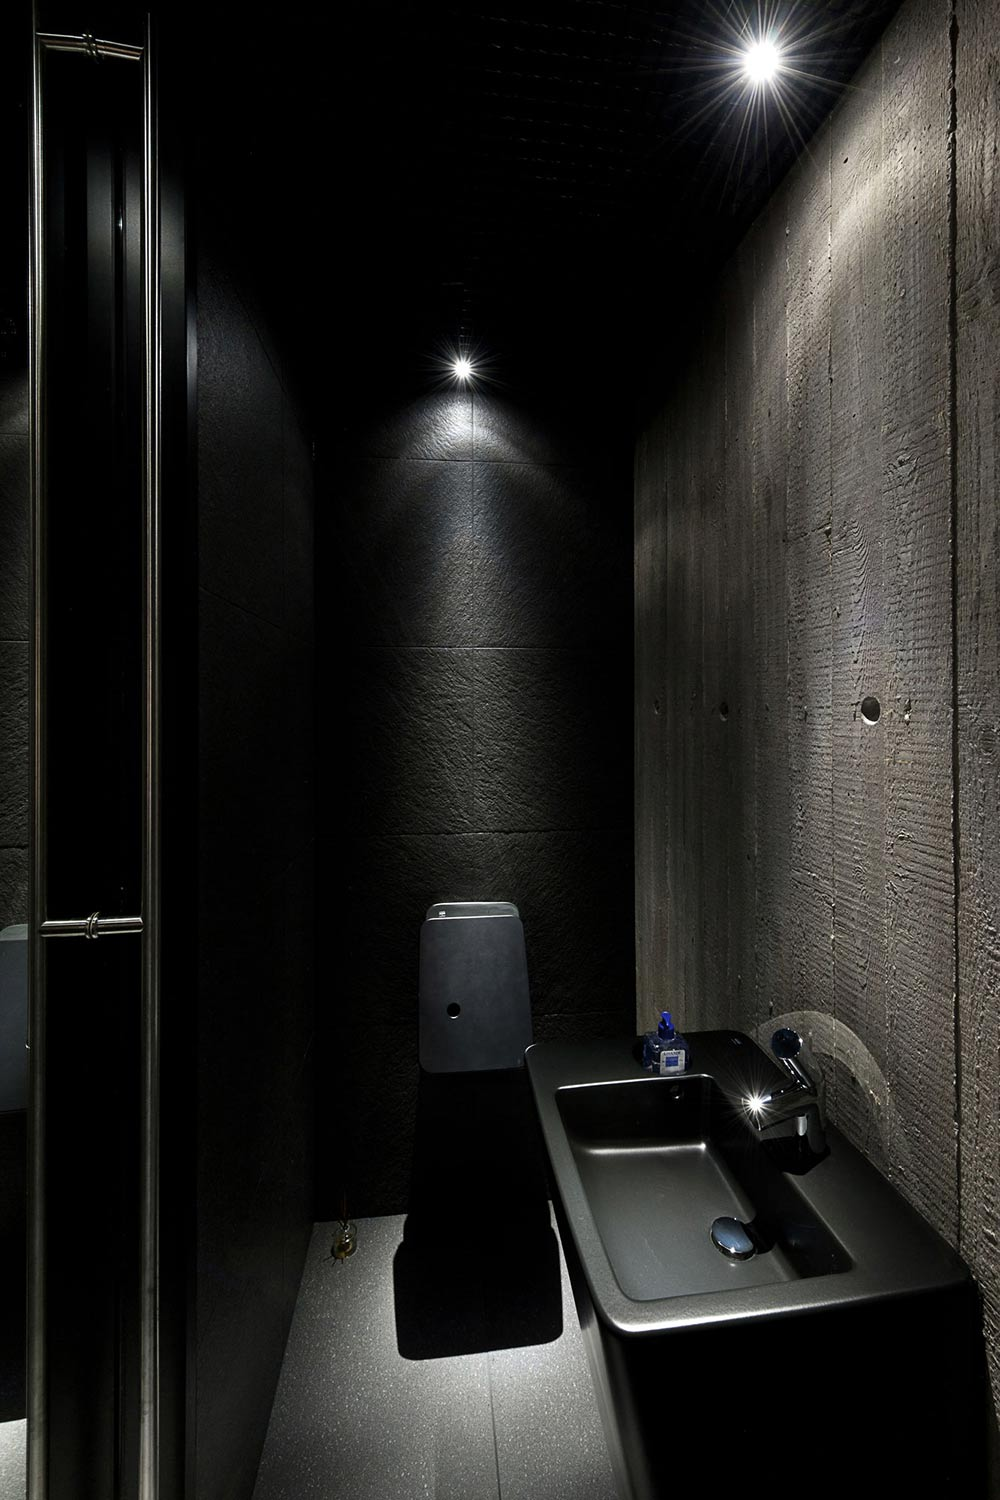 Dark Bathroom, House in the Woods of Kaunas, Lithuania